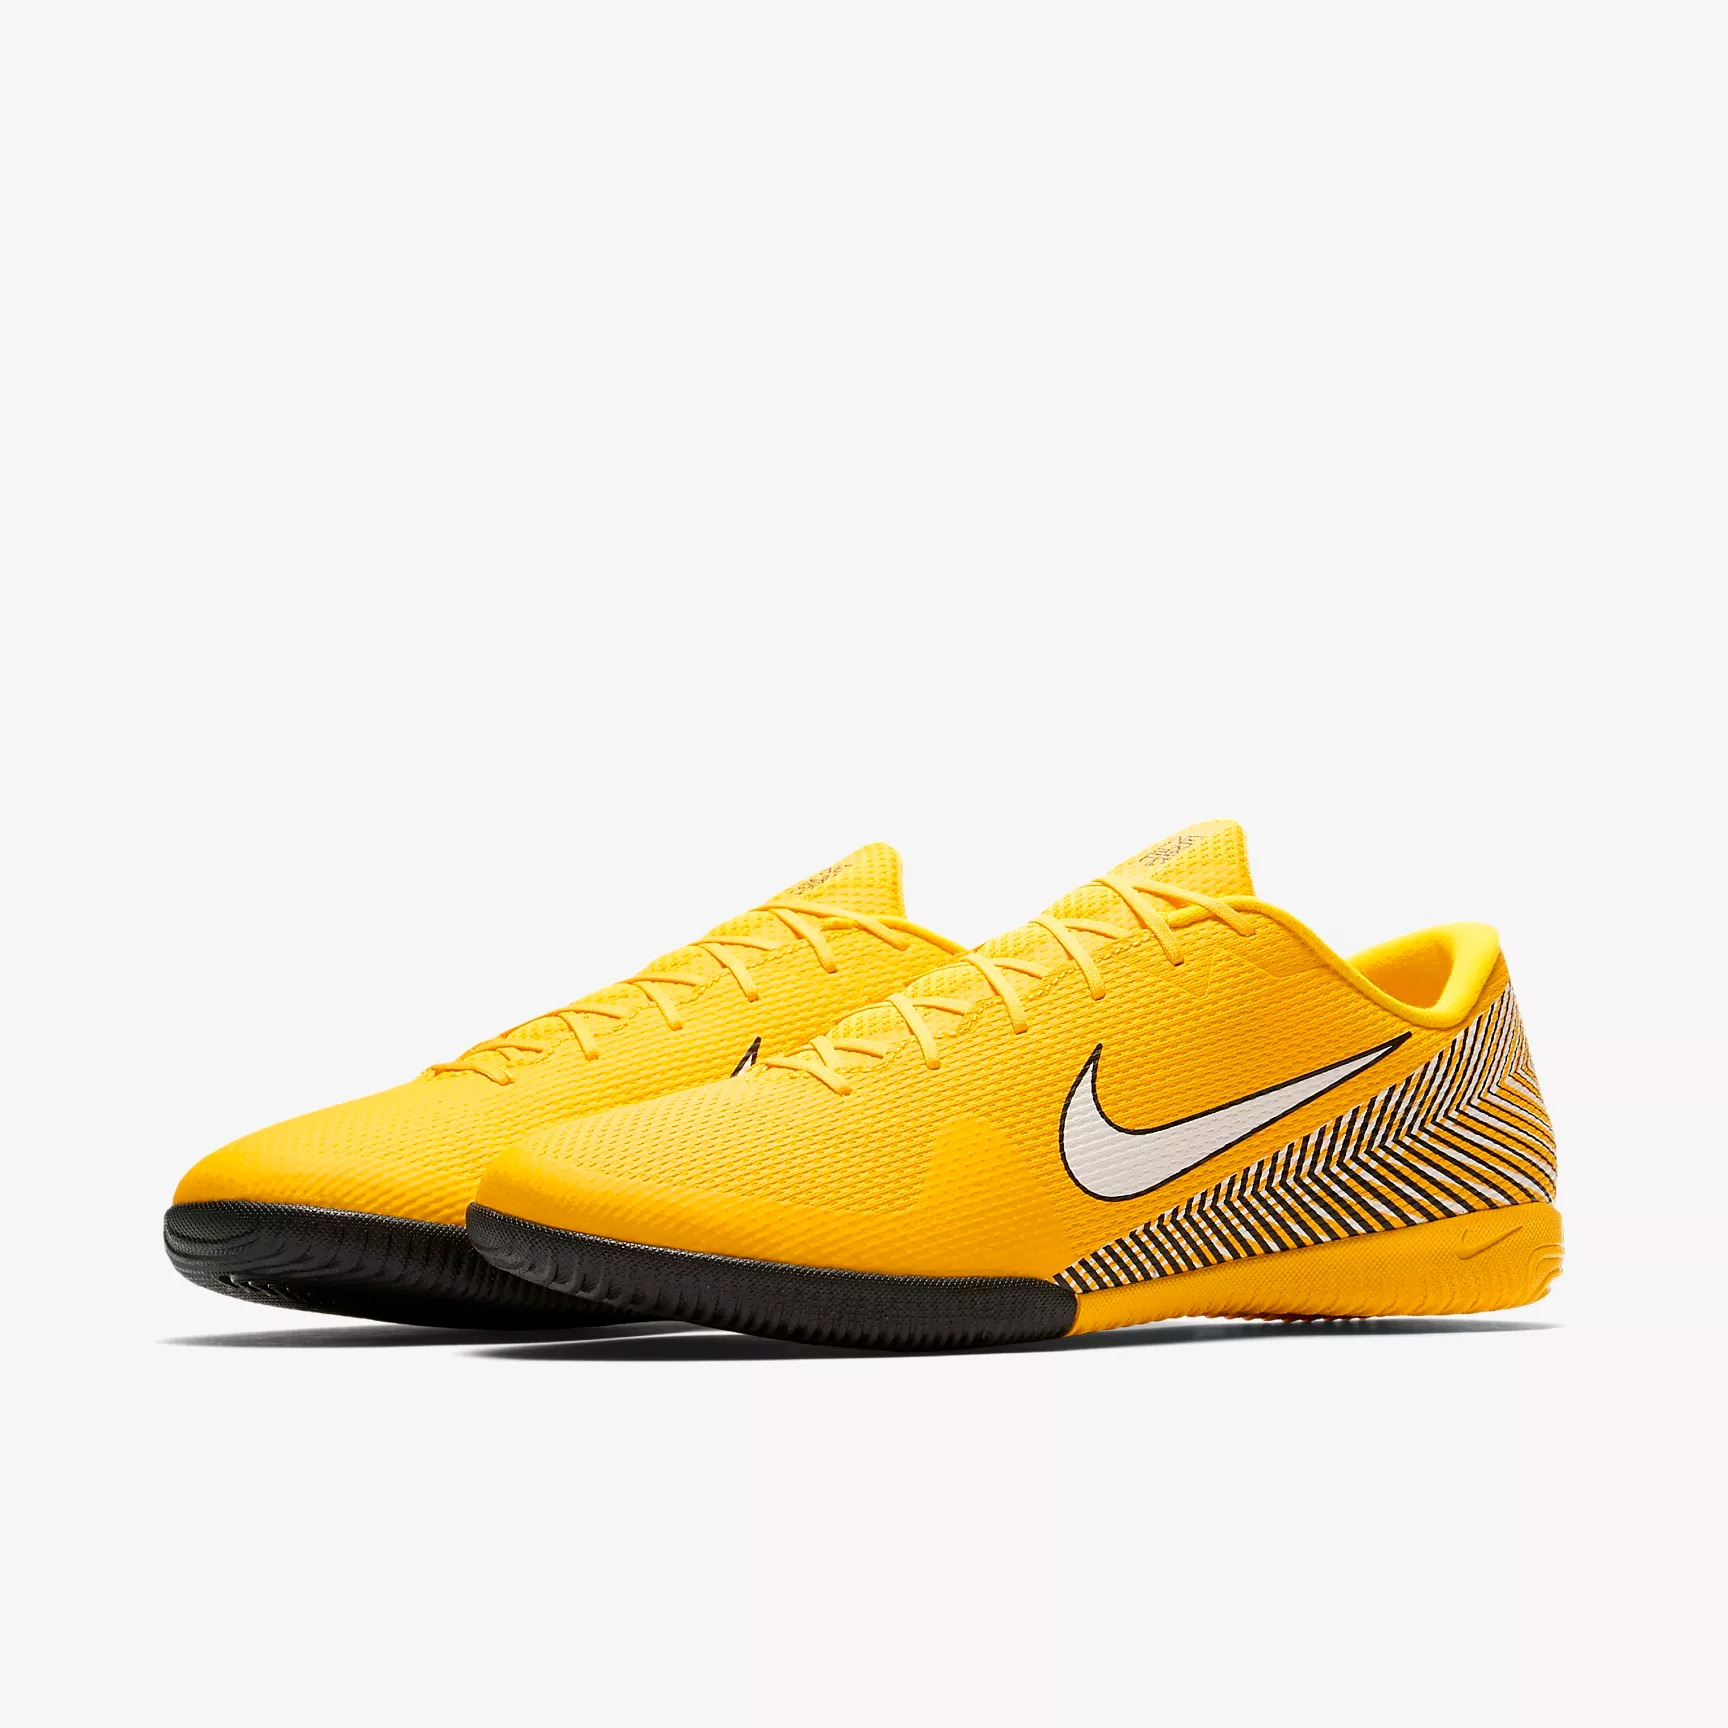 best service ce169 aed6a Nike Mercurial Vapor XII Academy Neymar Jr. IC Soccer Cleats - Soccer  Cleats Nike Football Boots - Superfanas.lt